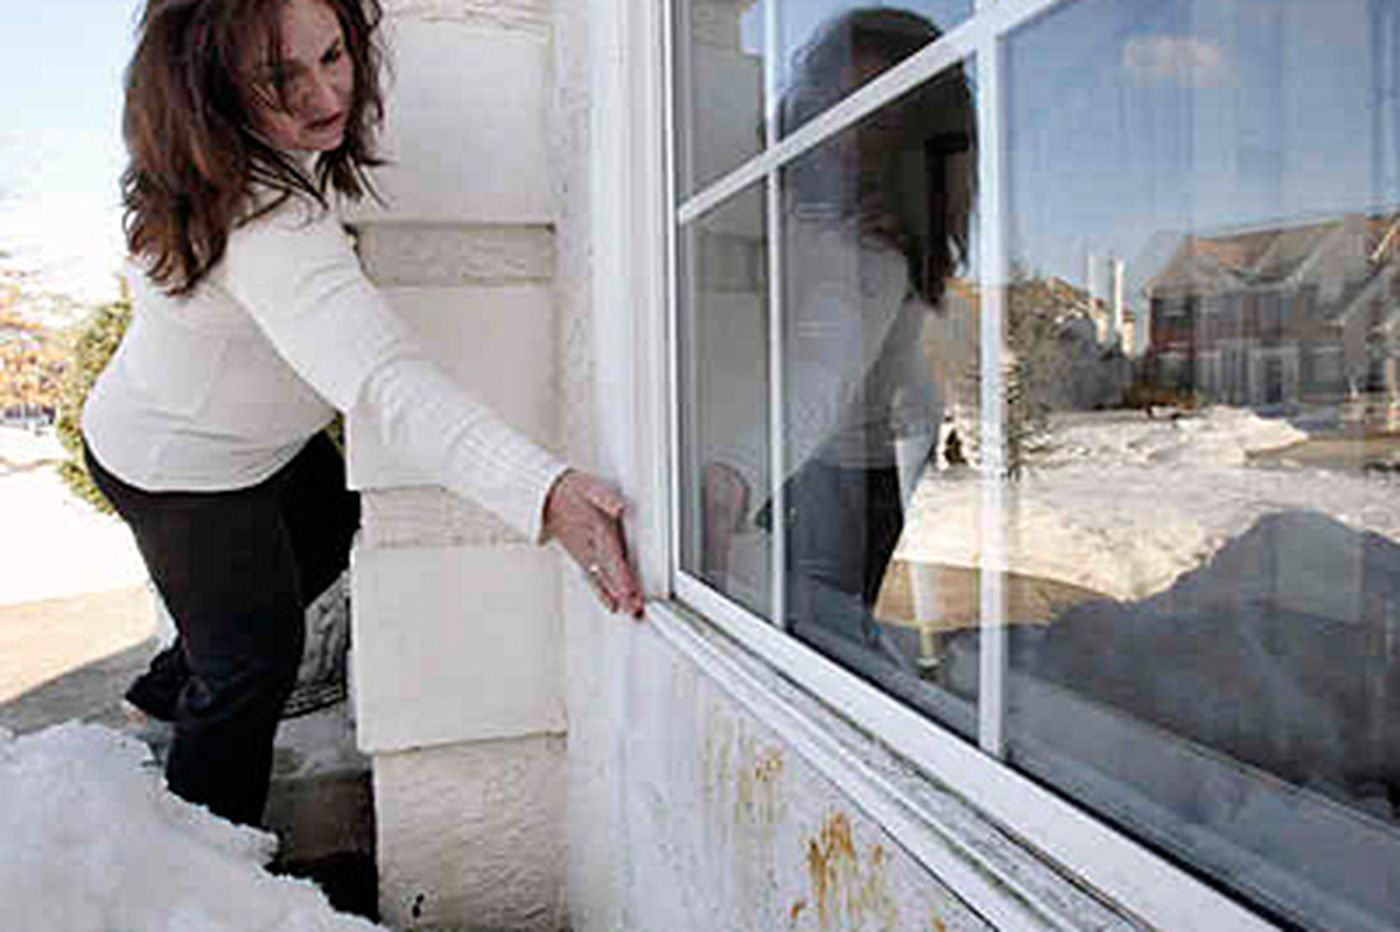 Homeowners sue builder over mold